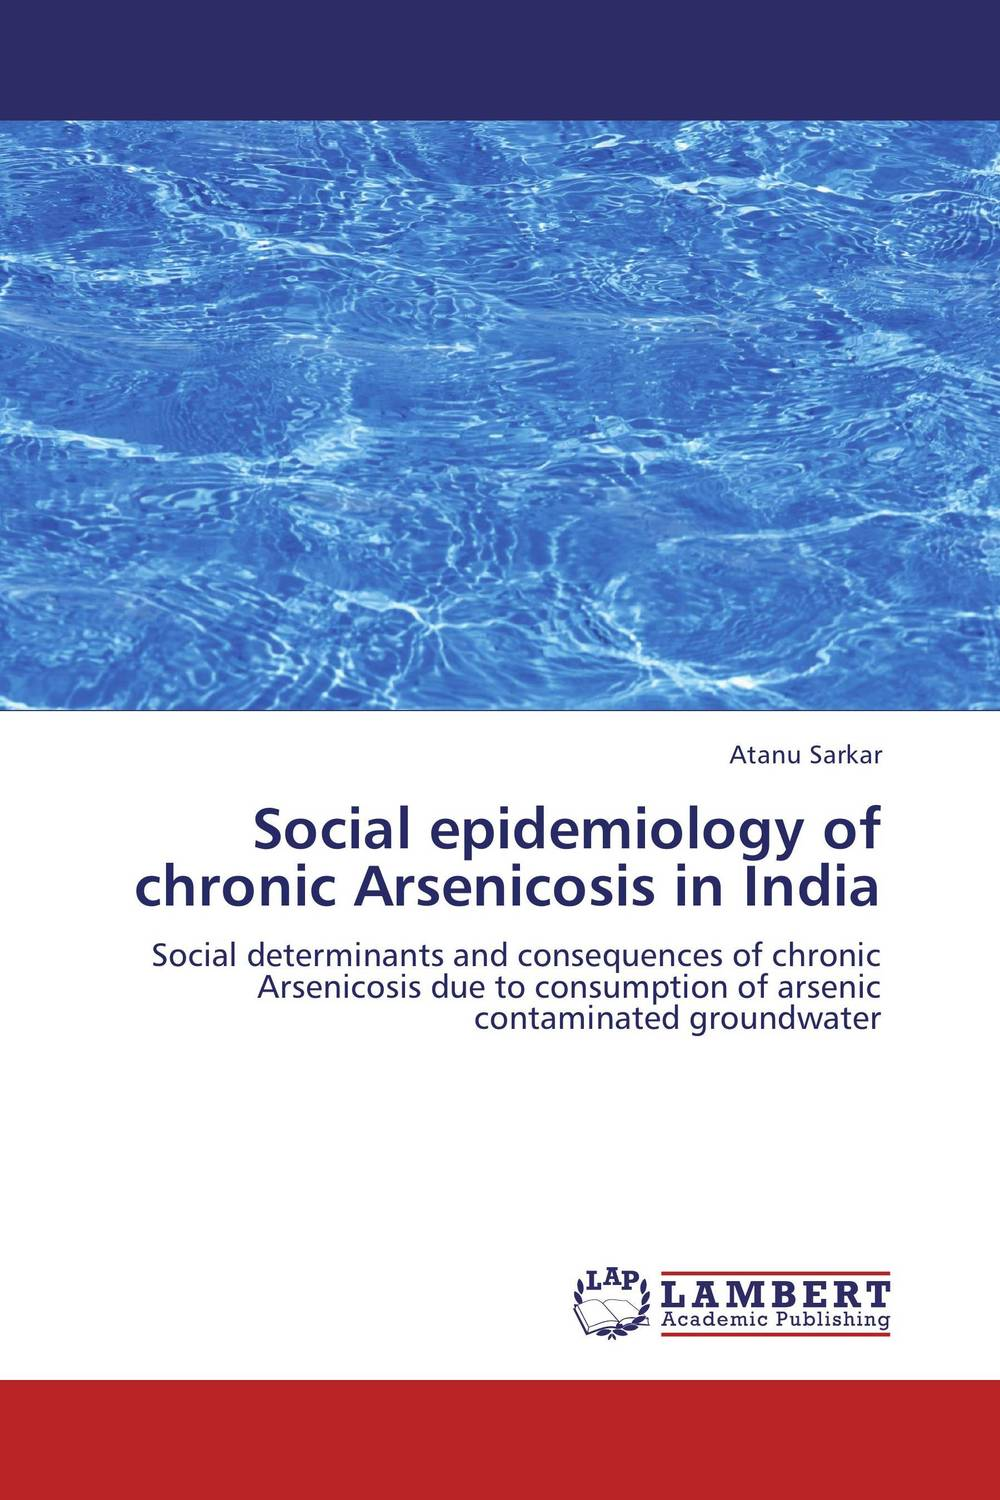 Social epidemiology of chronic Arsenicosis in India pastoralism and agriculture pennar basin india